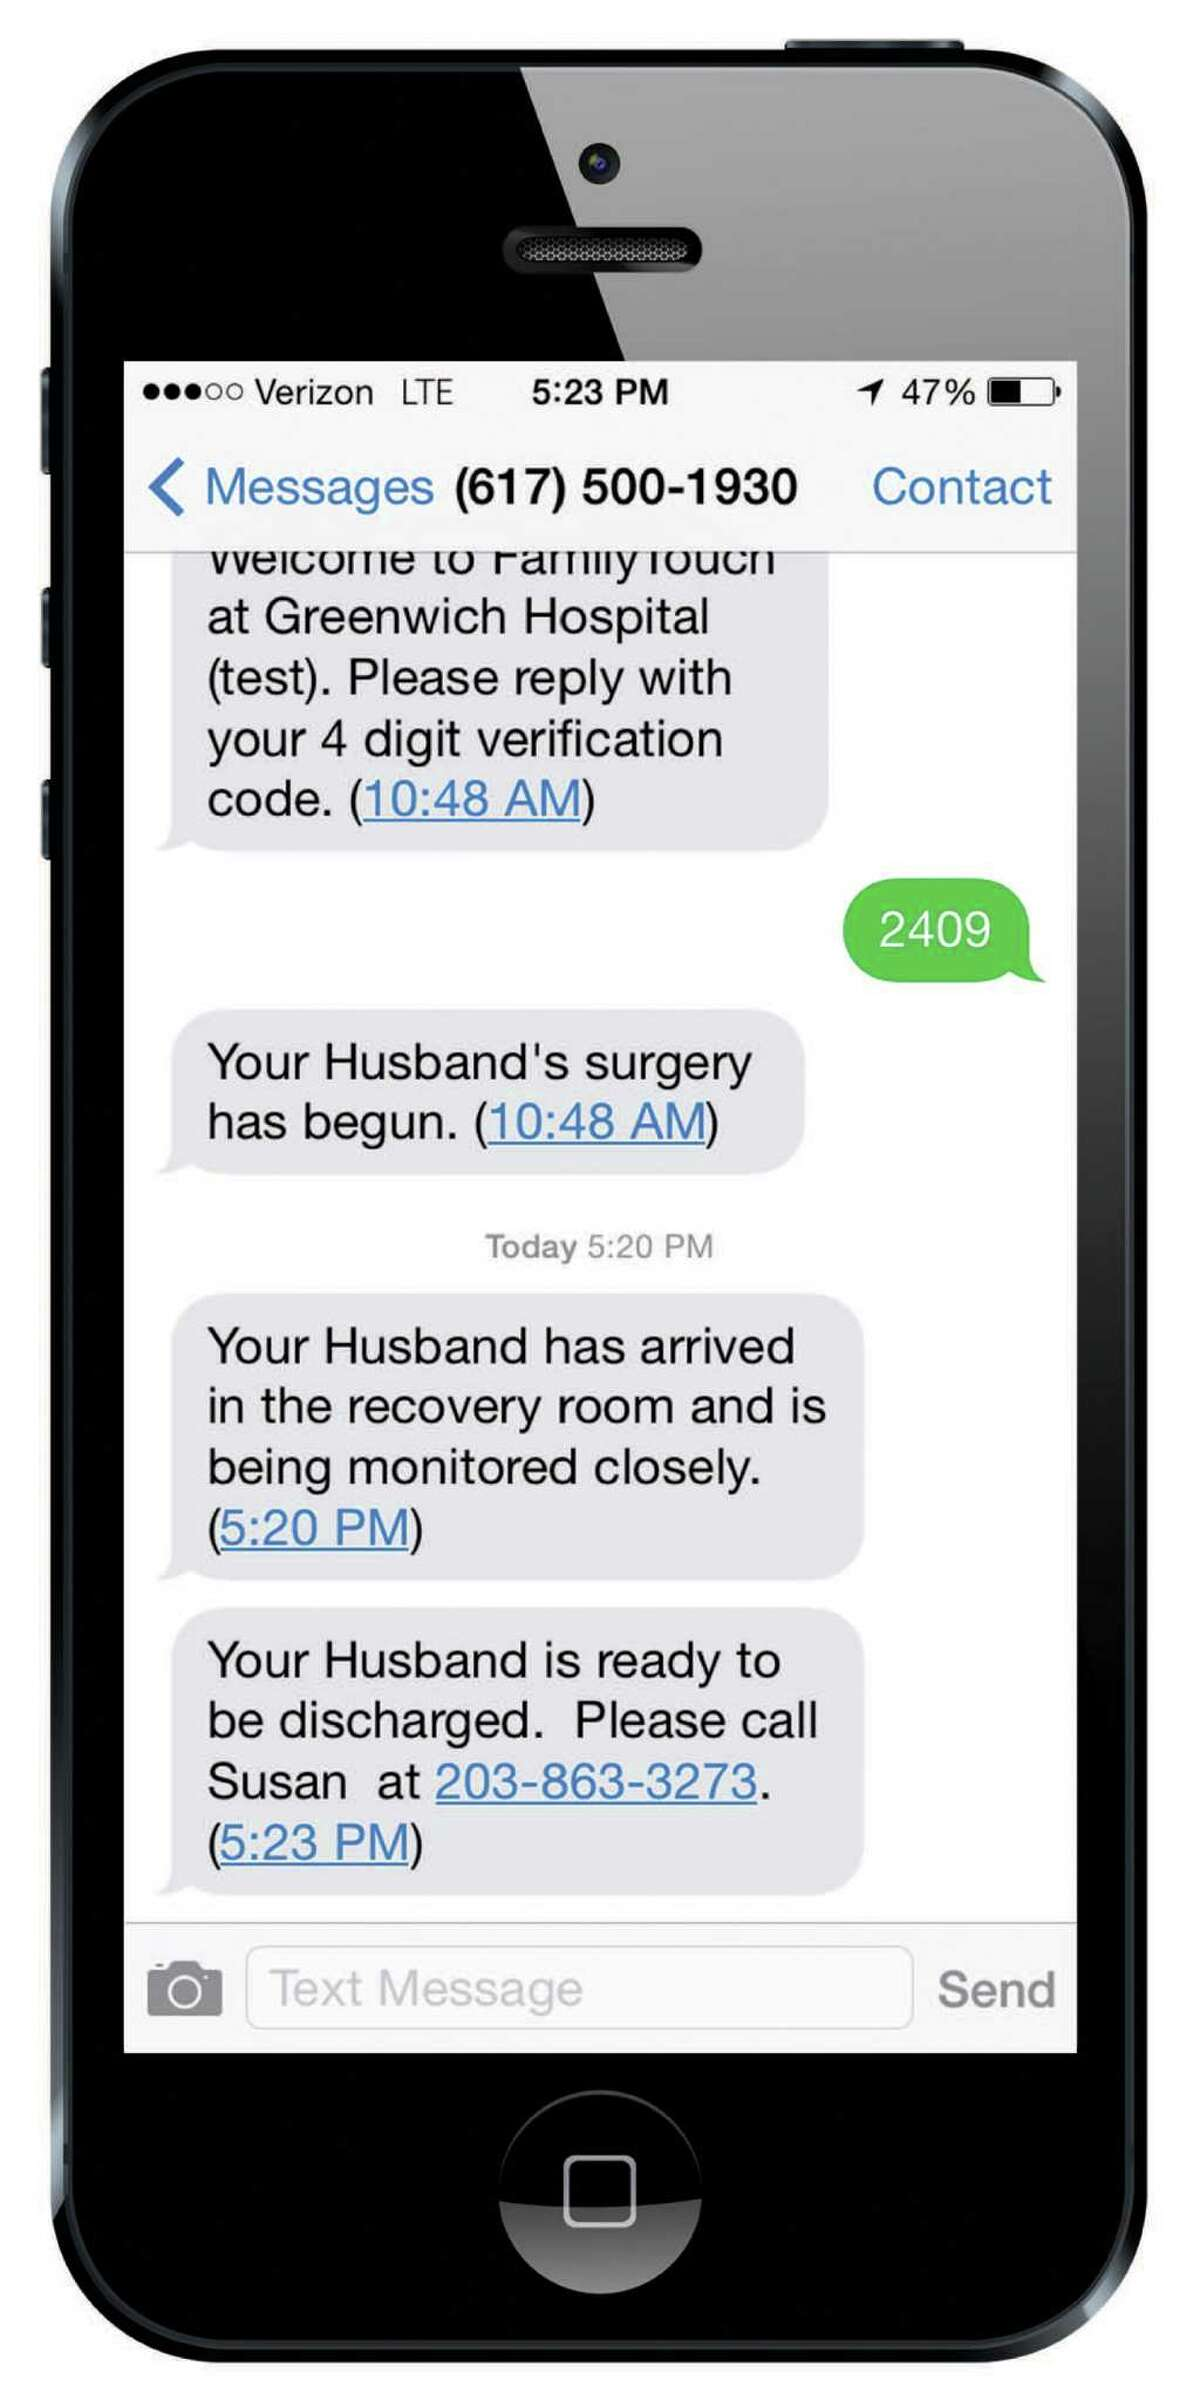 Greenwich Hospital is offering a service that allows patients getting ambulatory surgery to have their health care team text friends and family about their progress. It's one of several unique ways hospitals are using technology.